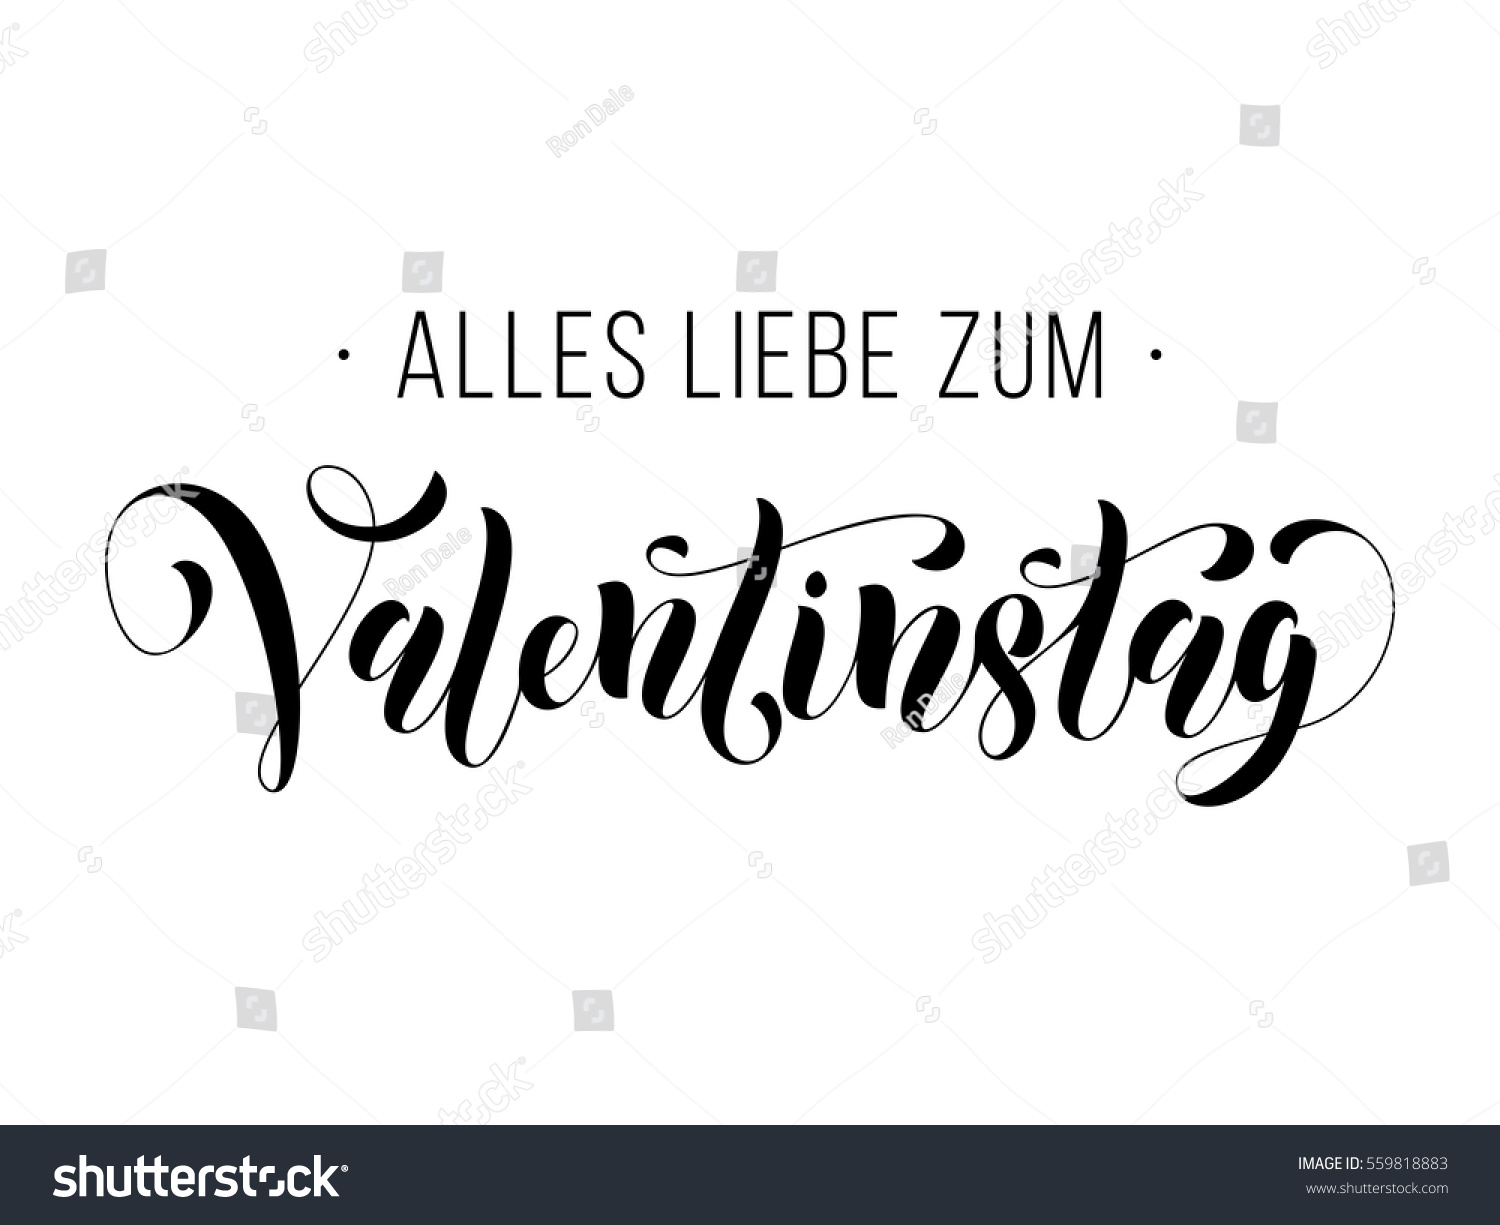 Valentines Day German Calligraphy Text Lettering Stock Vector ...